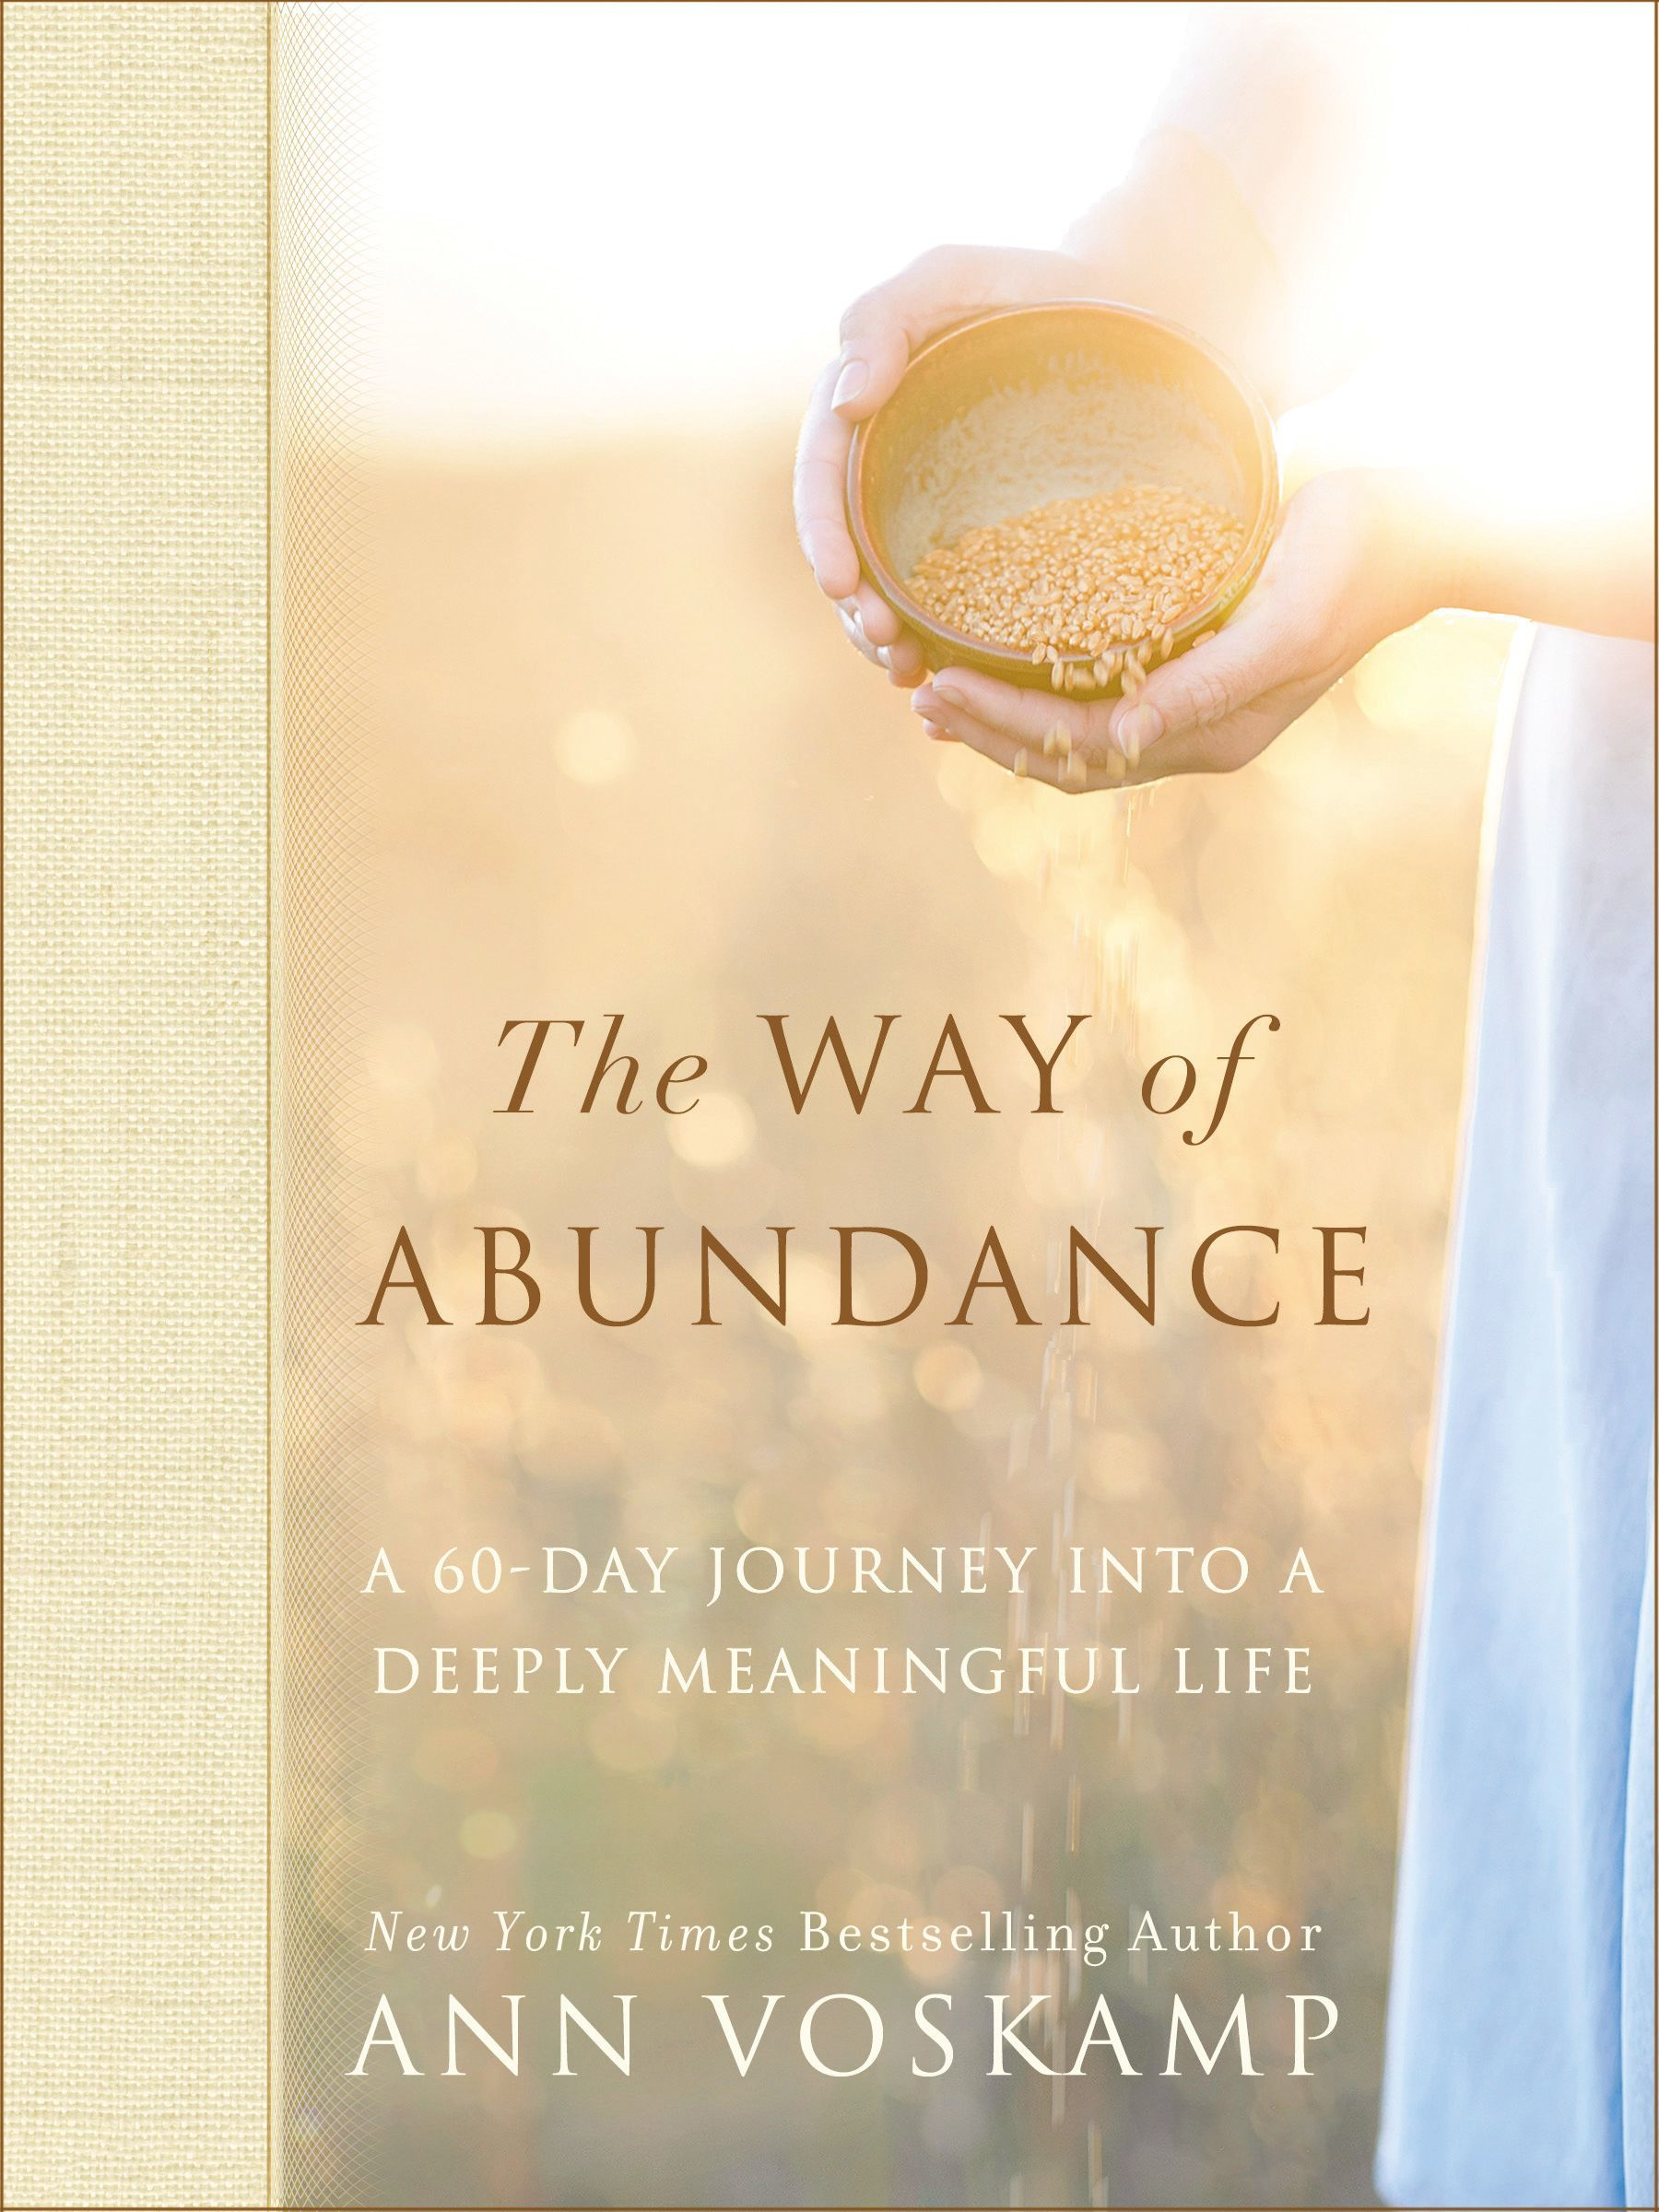 The Way of Abundance A 60-Day Journey into a Deeply Meaningful Life